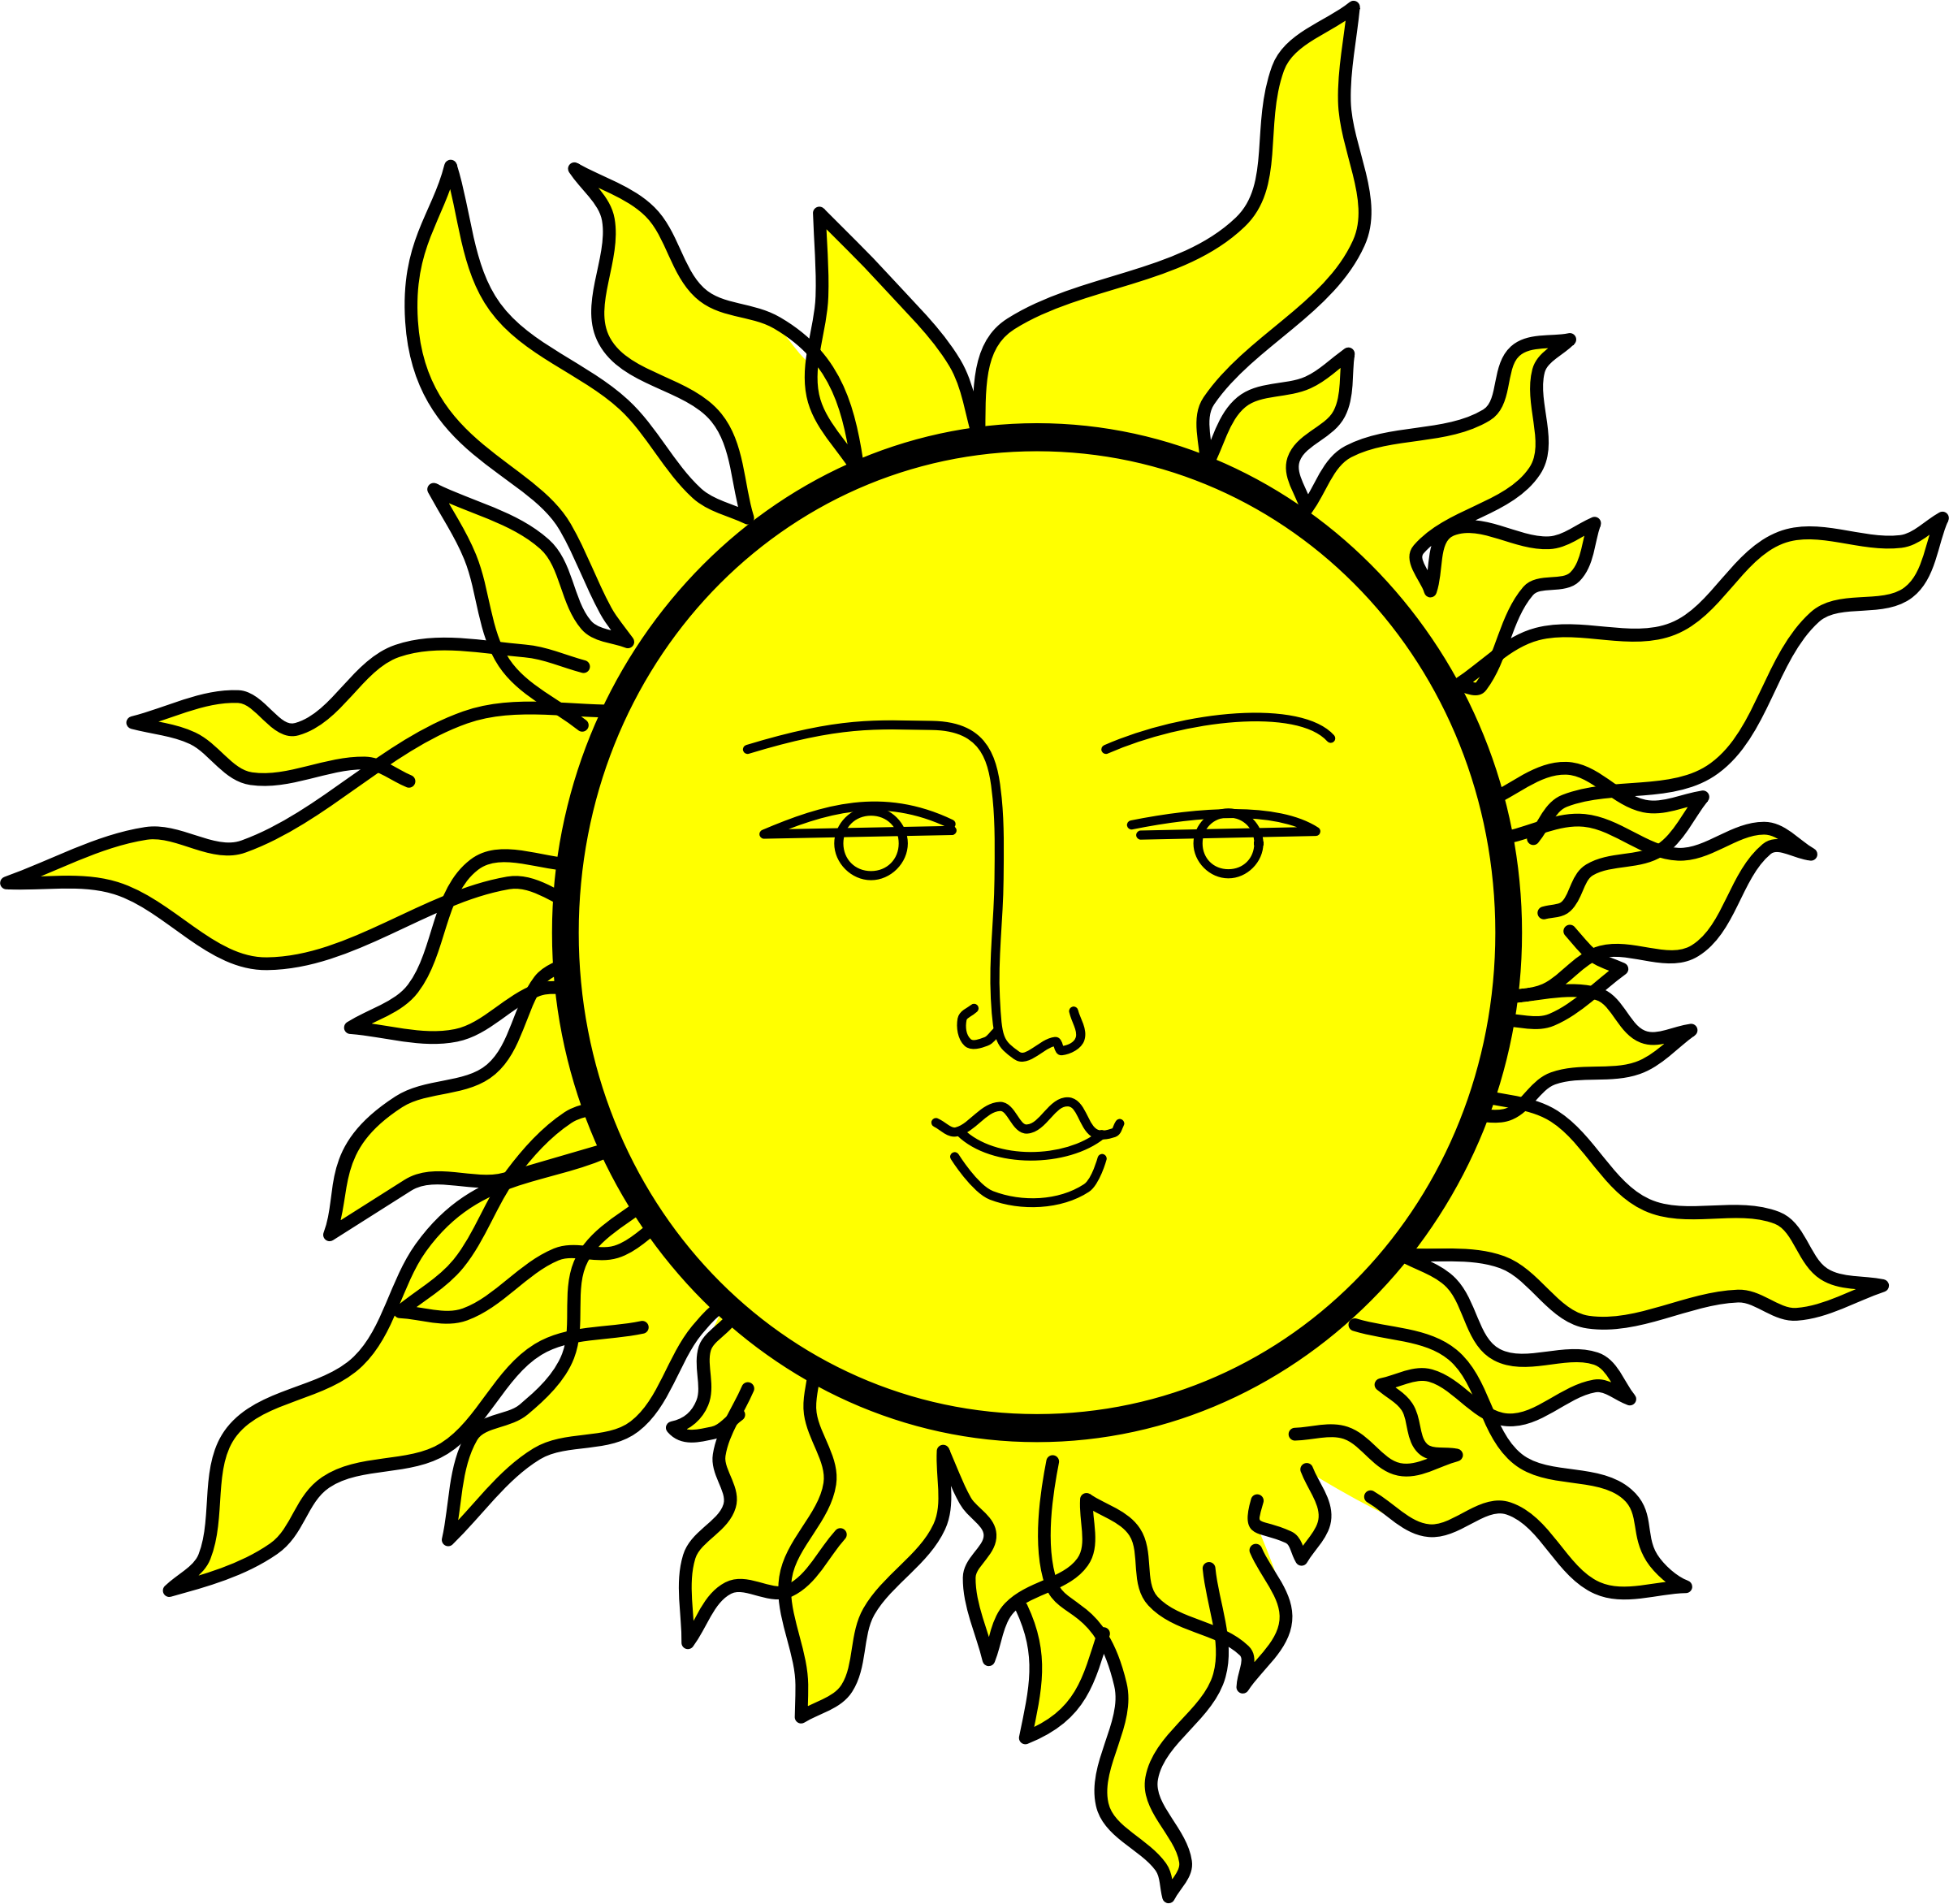 Sun clipart no face graphic royalty free library Hippie Clipart Sun Free collection | Download and share Hippie ... graphic royalty free library